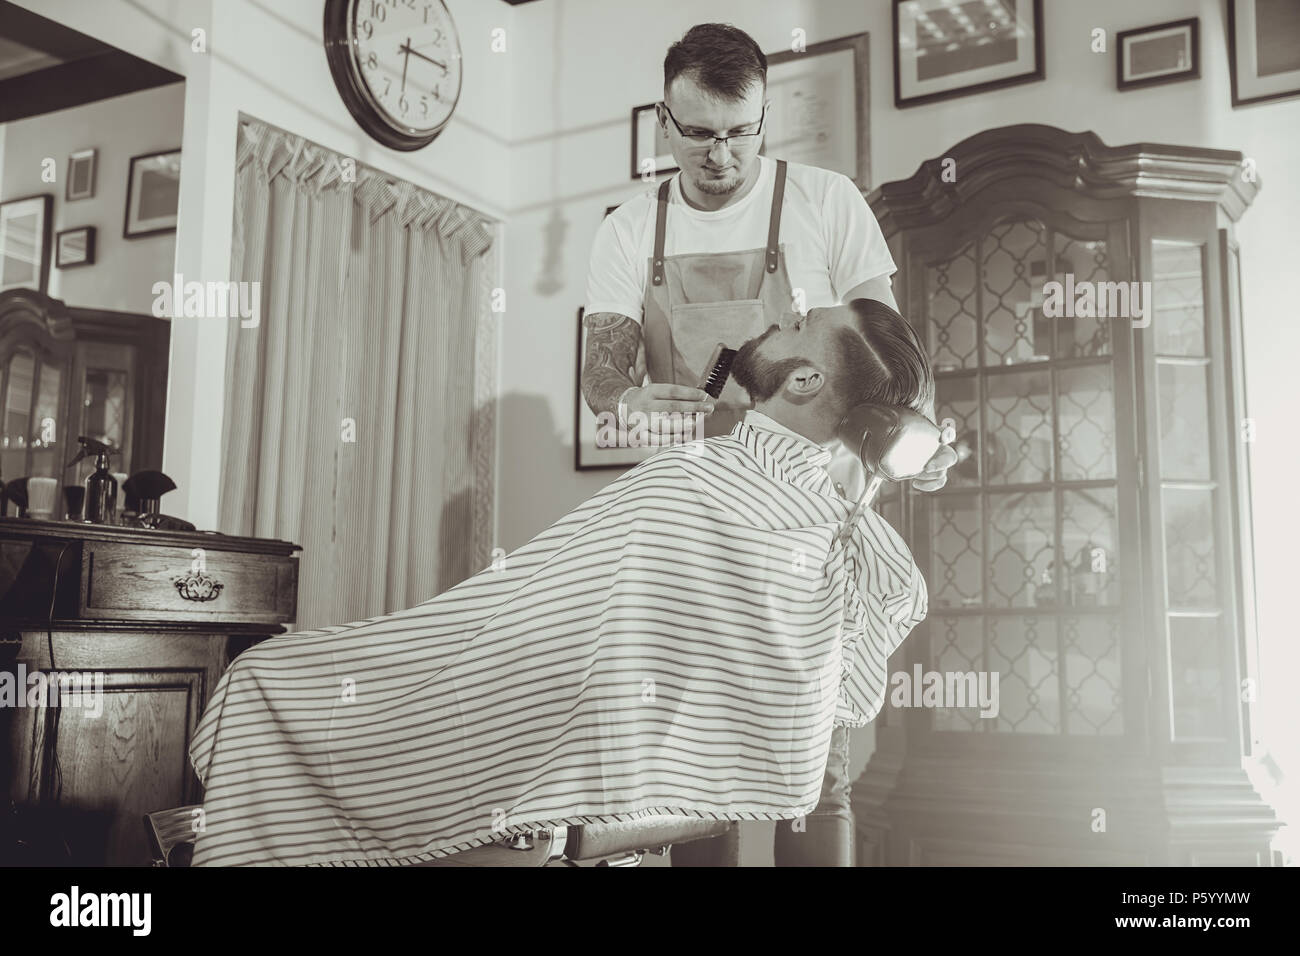 Barber during work in his barber shop. Picture in black and white stylization - Stock Image